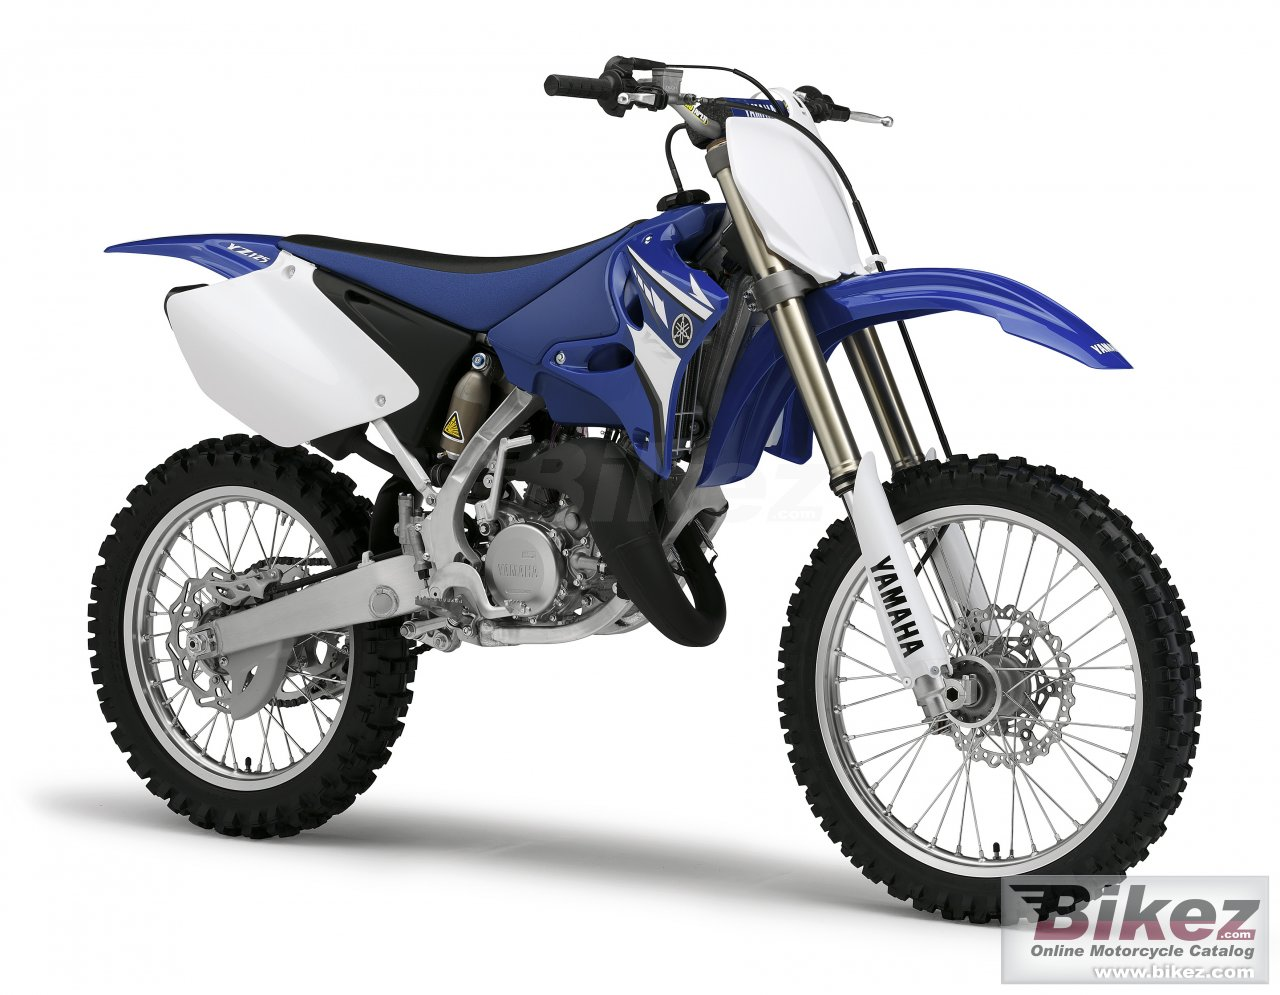 Big Yamaha yz125 picture and wallpaper from Bikez.com